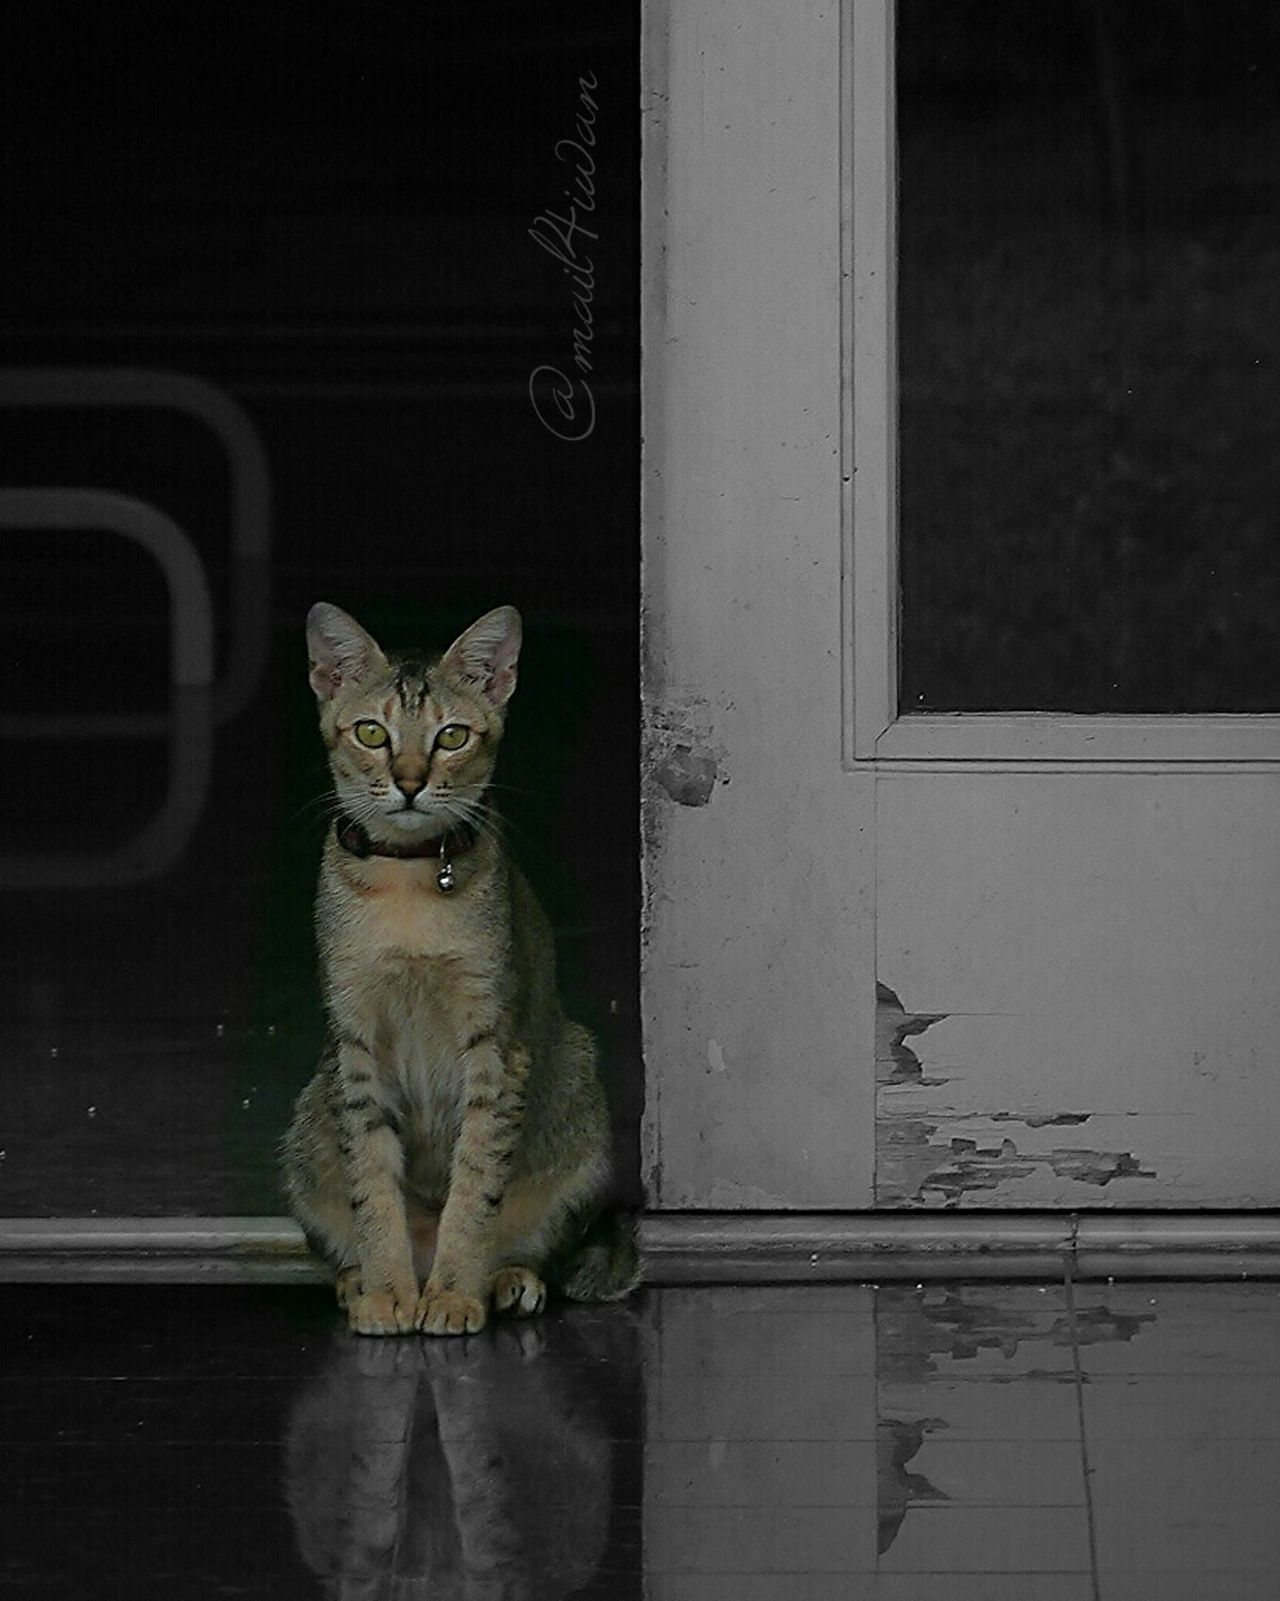 Domestic Cat Pets Feline Portrait Domestic Animals Looking At Camera Indoors  Sitting No People Mammal Animal Themes Day Color Splash